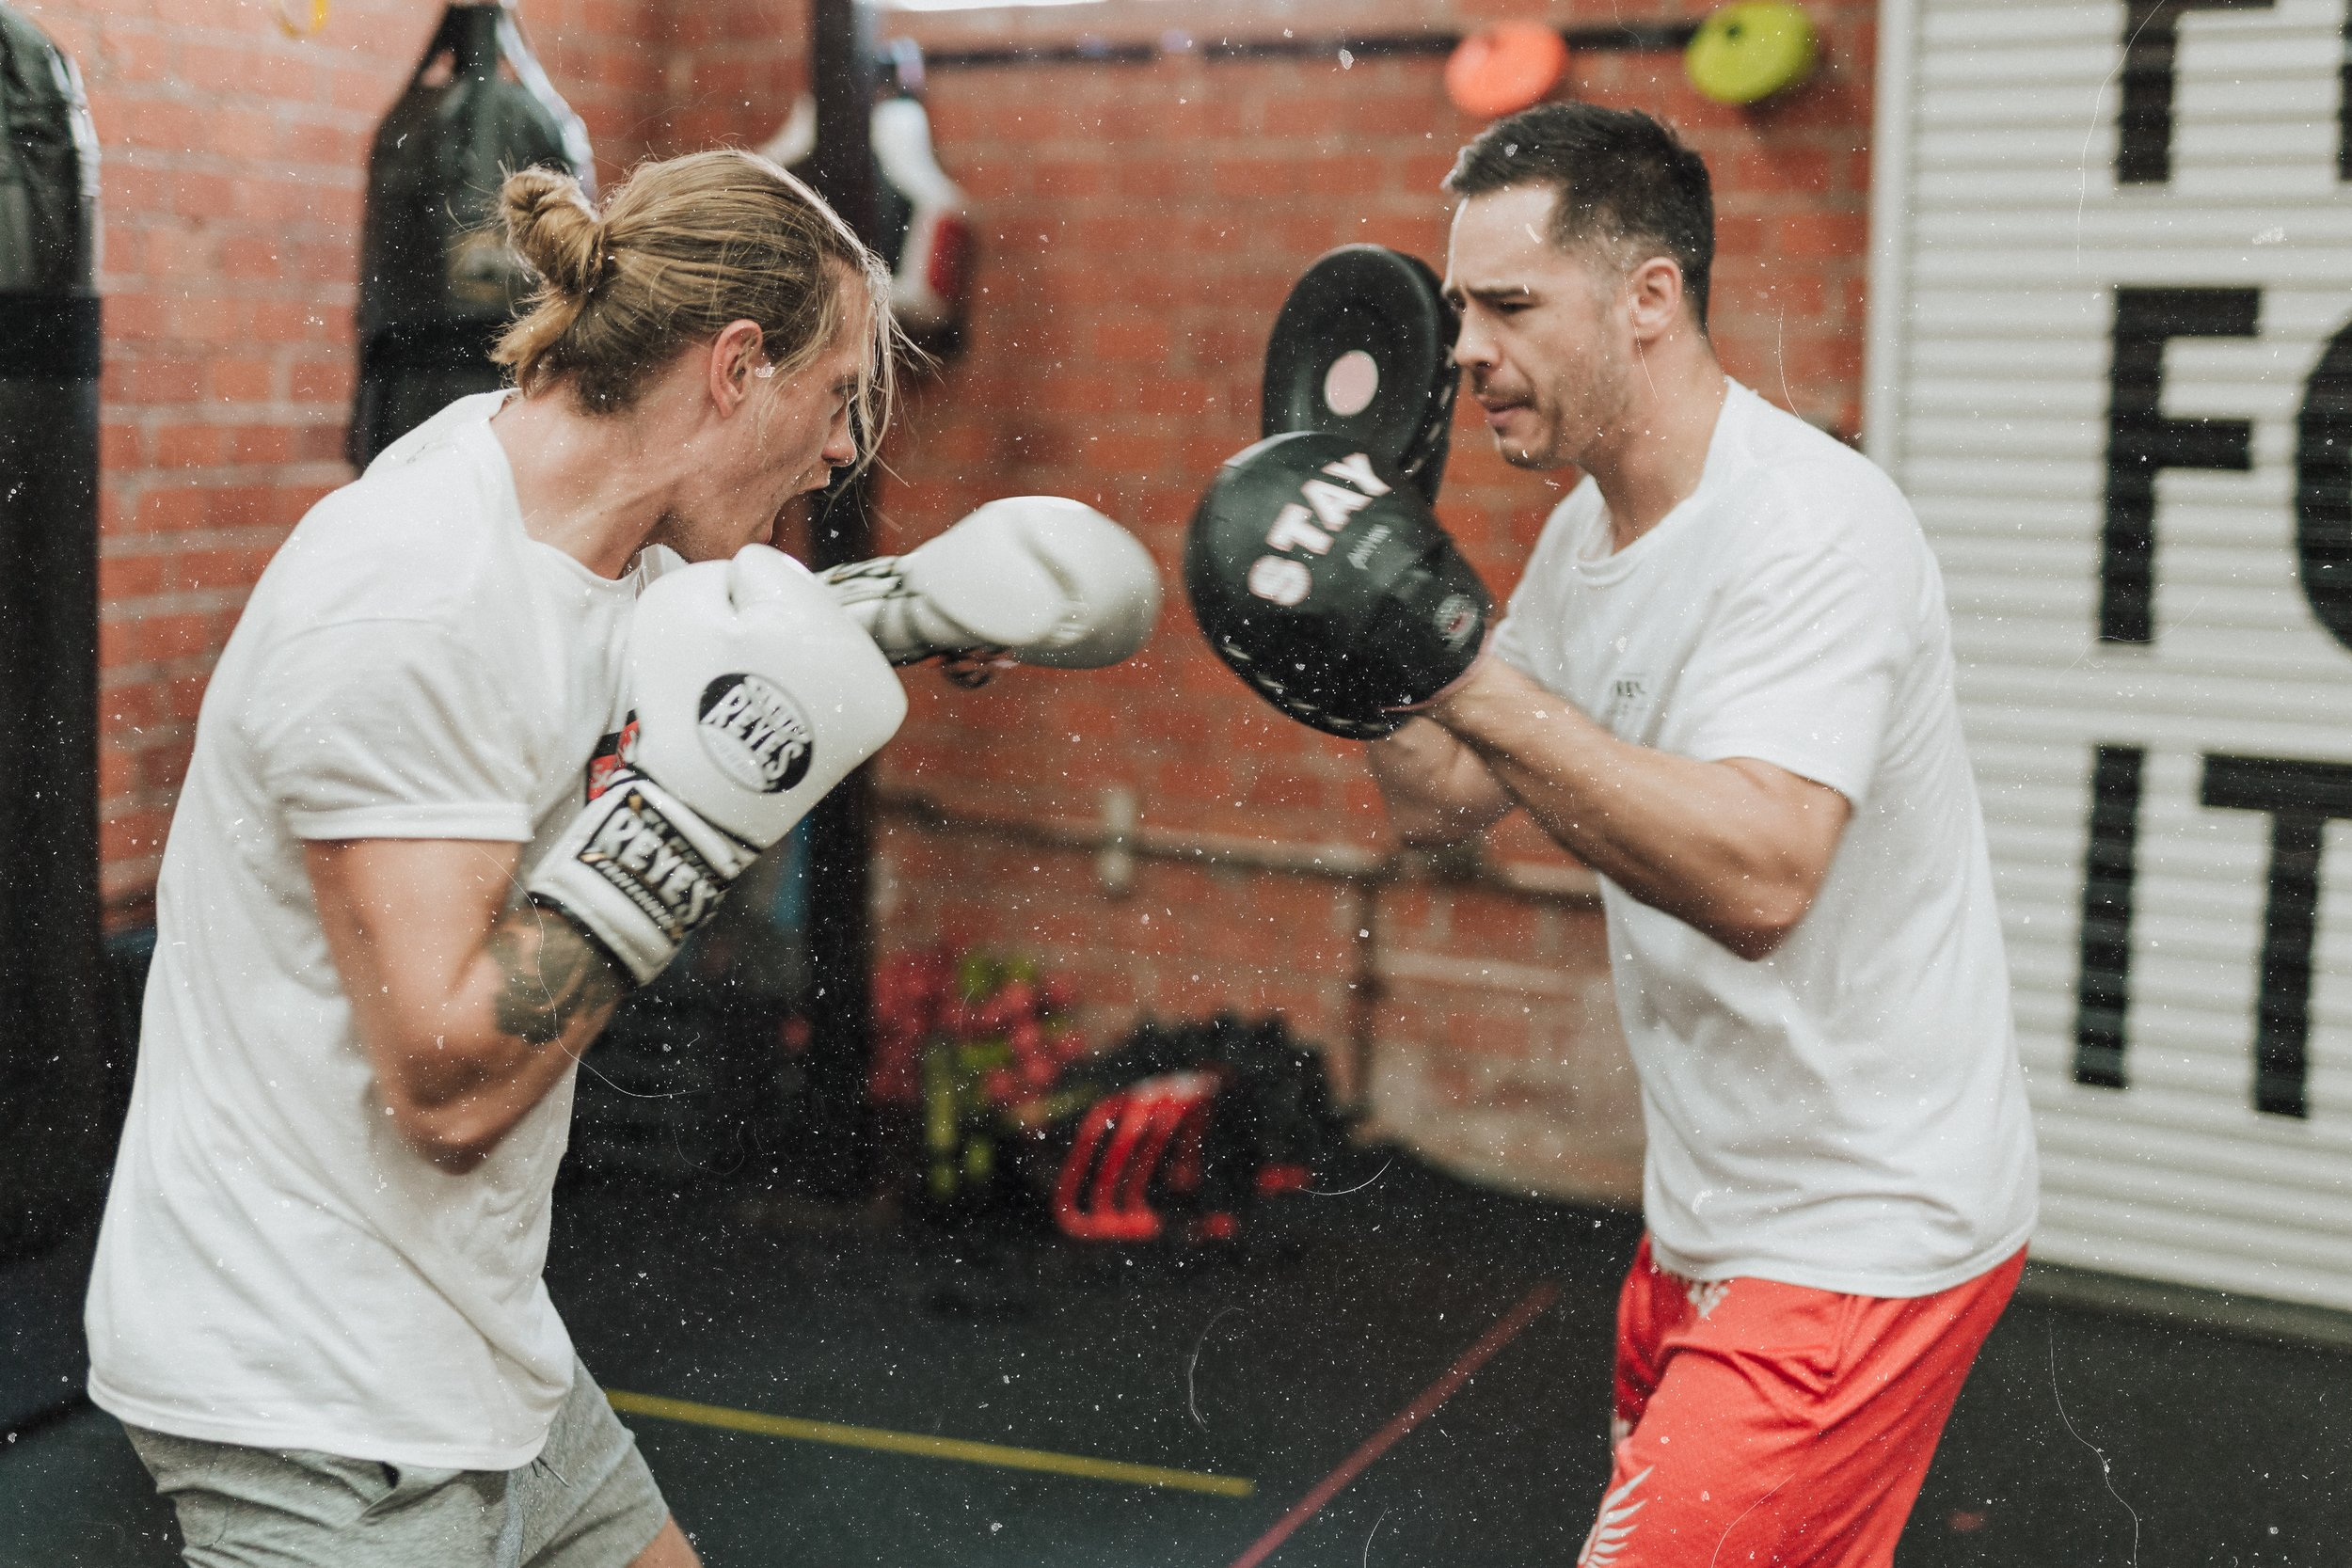 Boxing - A combination of fun and simple boxing moves along with low-impact and toning exercises. Great for increasing your fitness level and enhancing body-shape. No boxing experience needed.Duration - 60mins